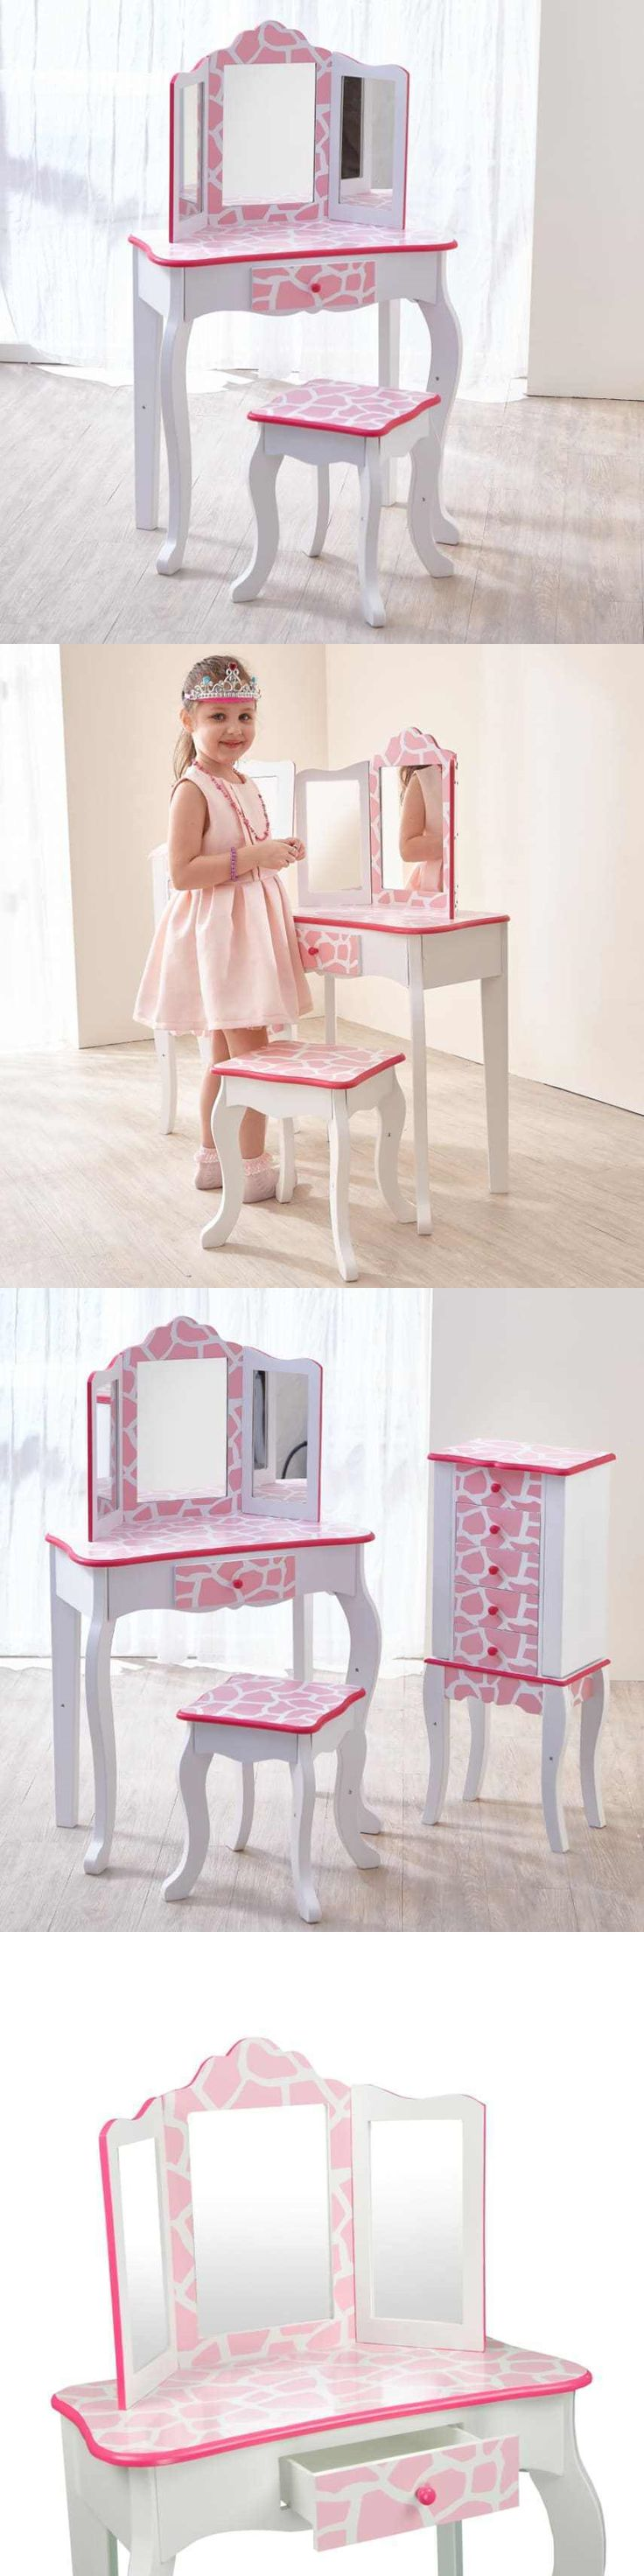 Kids at Home: Girls Dressing Table Set White Pink Desk Kids Bedroom Home Desk Mirror New BUY IT NOW ONLY: $144.1